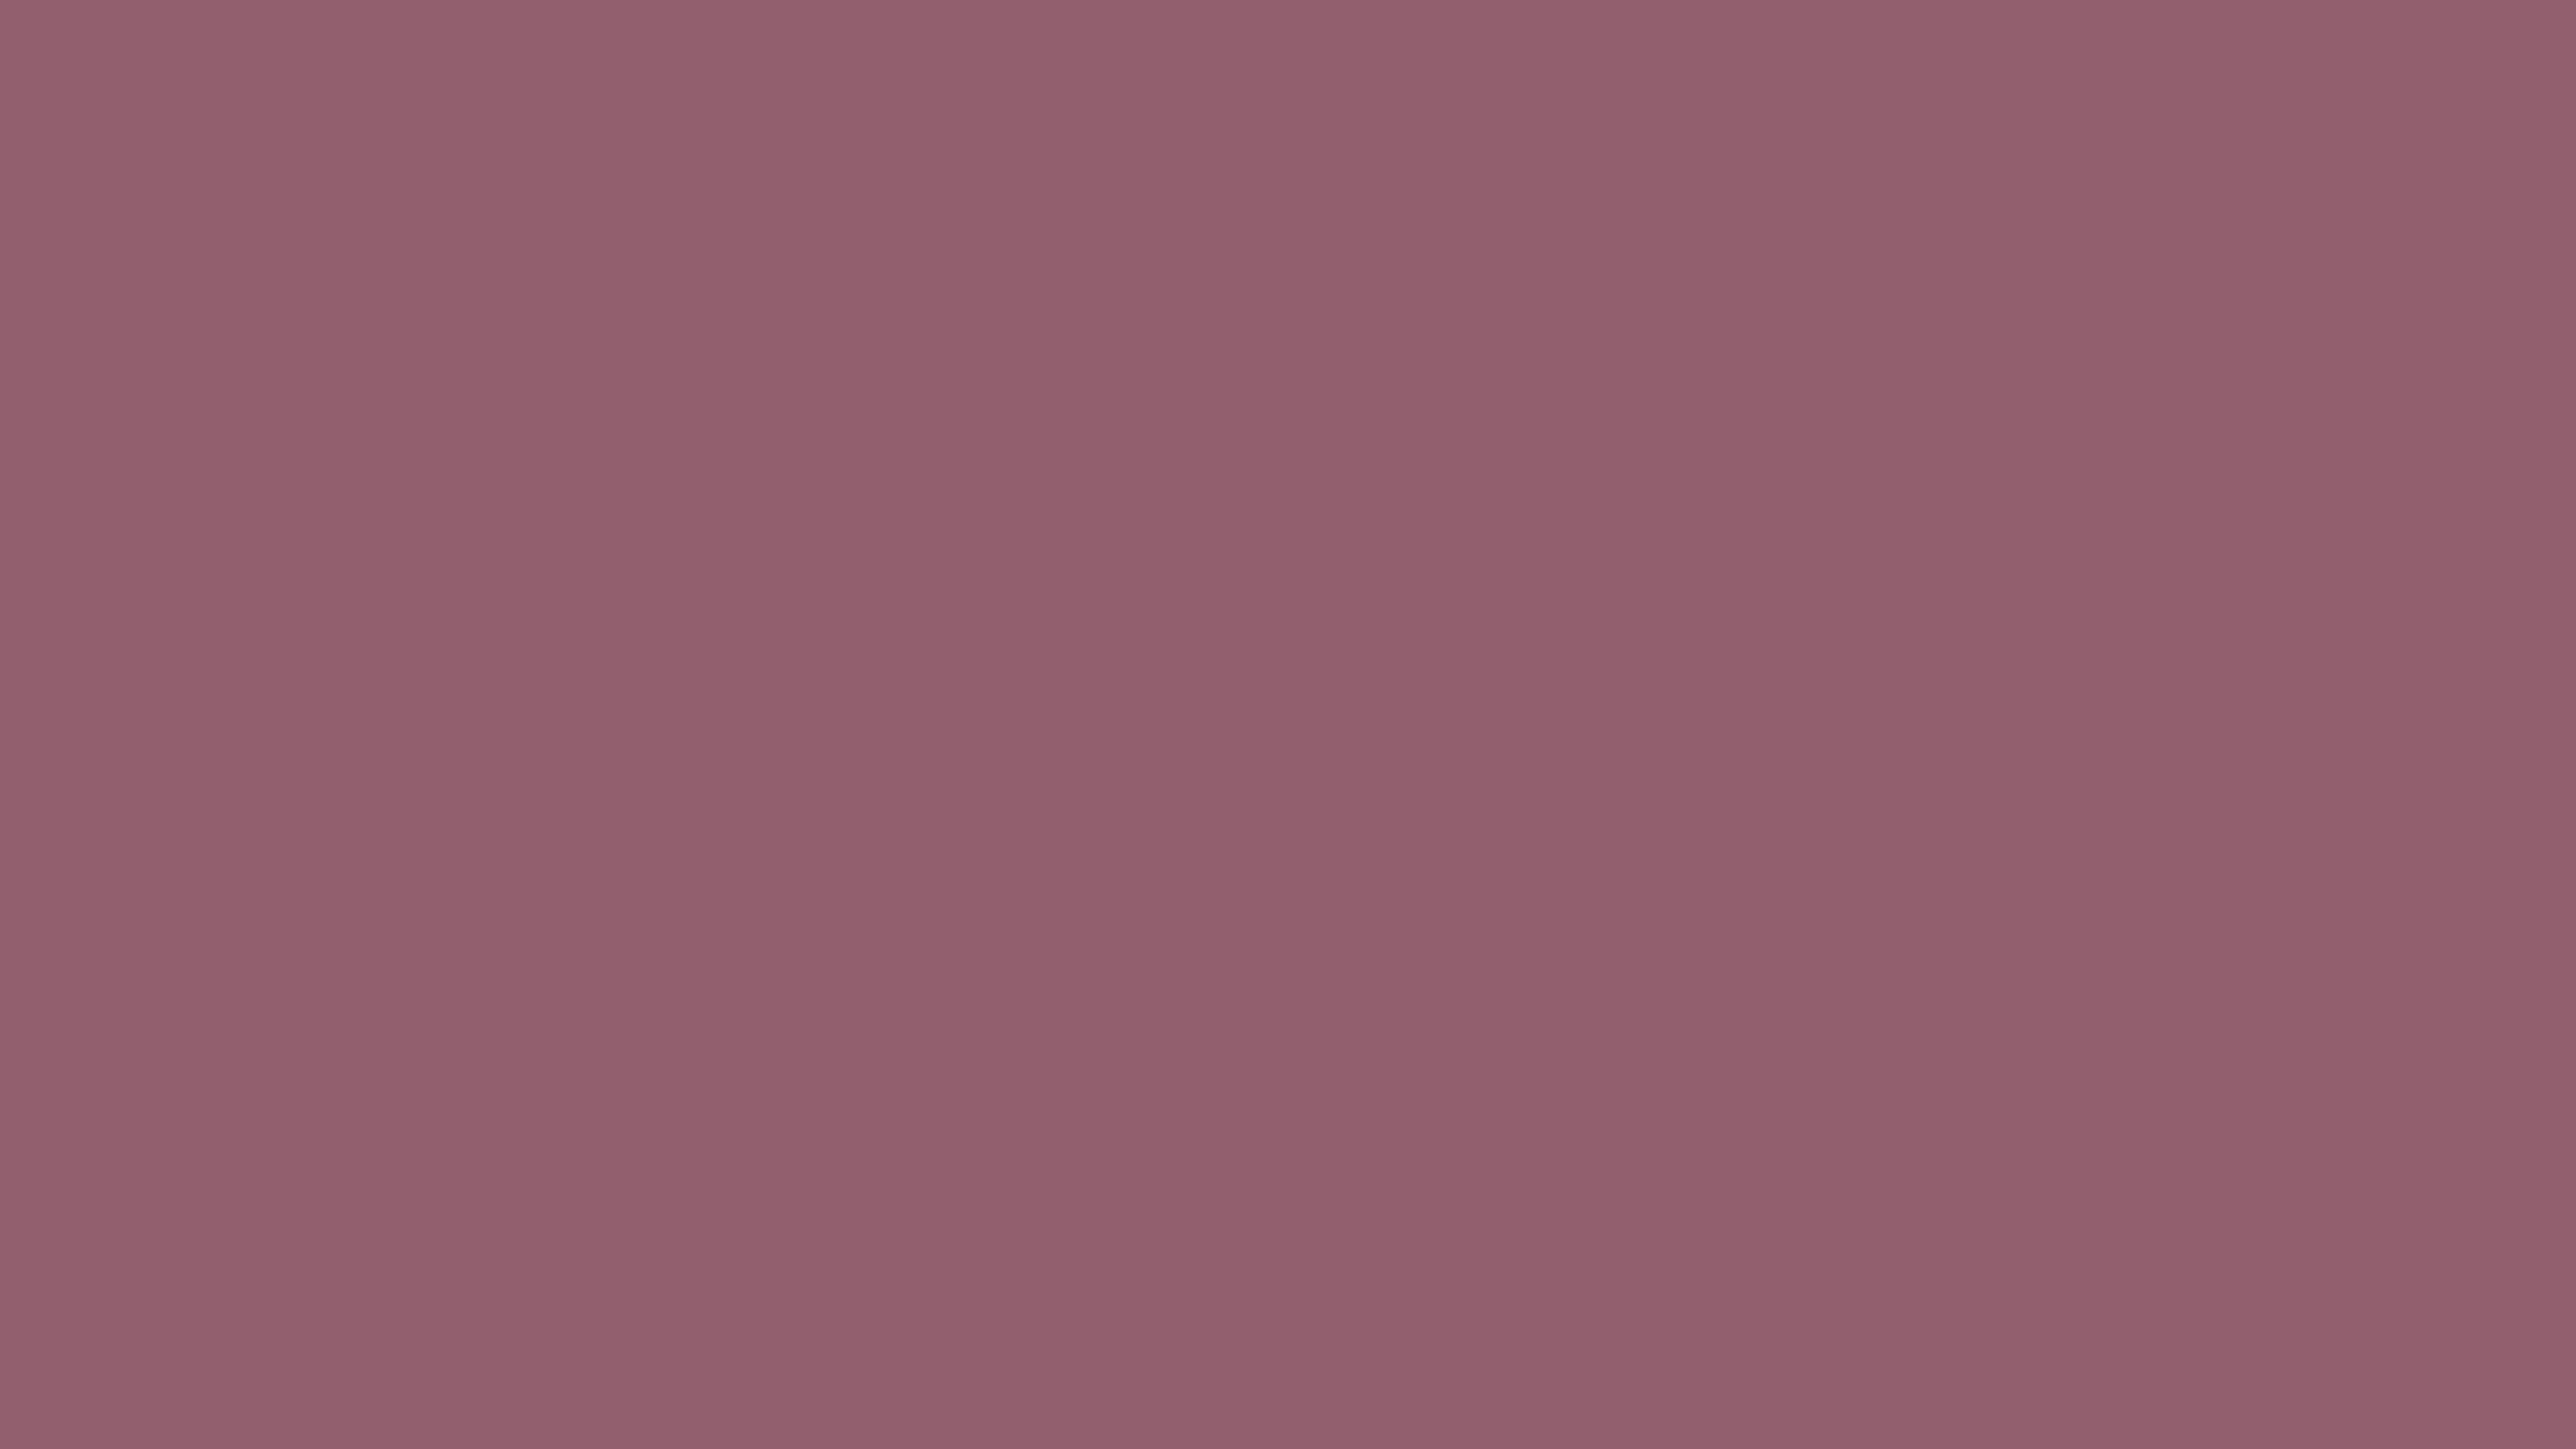 3840x2160 Raspberry Glace Solid Color Background